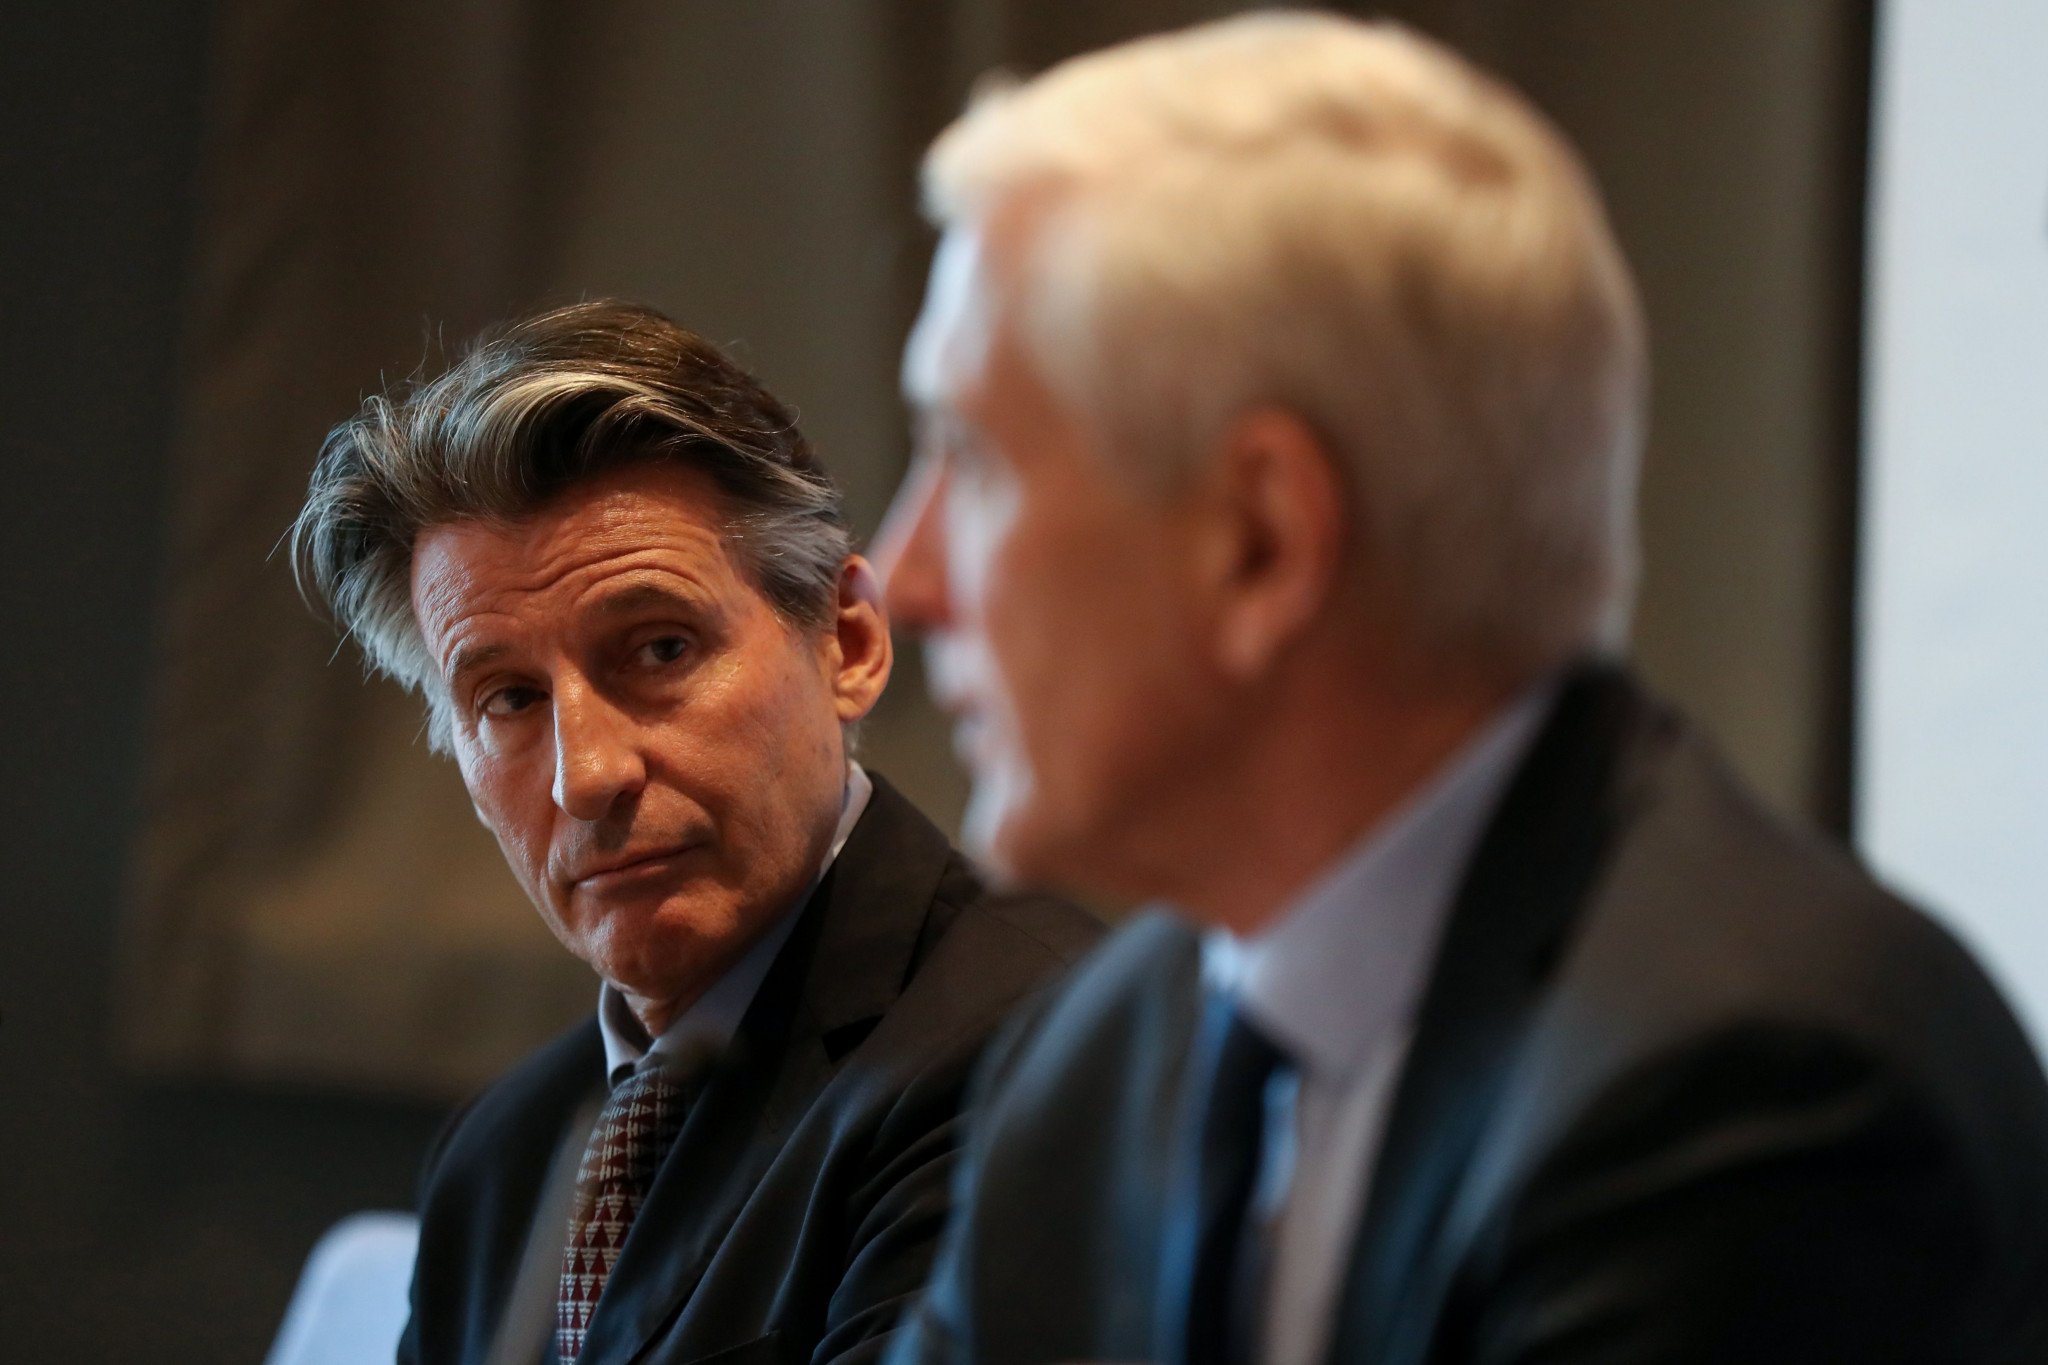 Sebastian Coe has guided the IAAF's strong position on Russia in the face of other organisations, like the IOC and WADA, backing down and has seen his reputation rise ©Getty Images